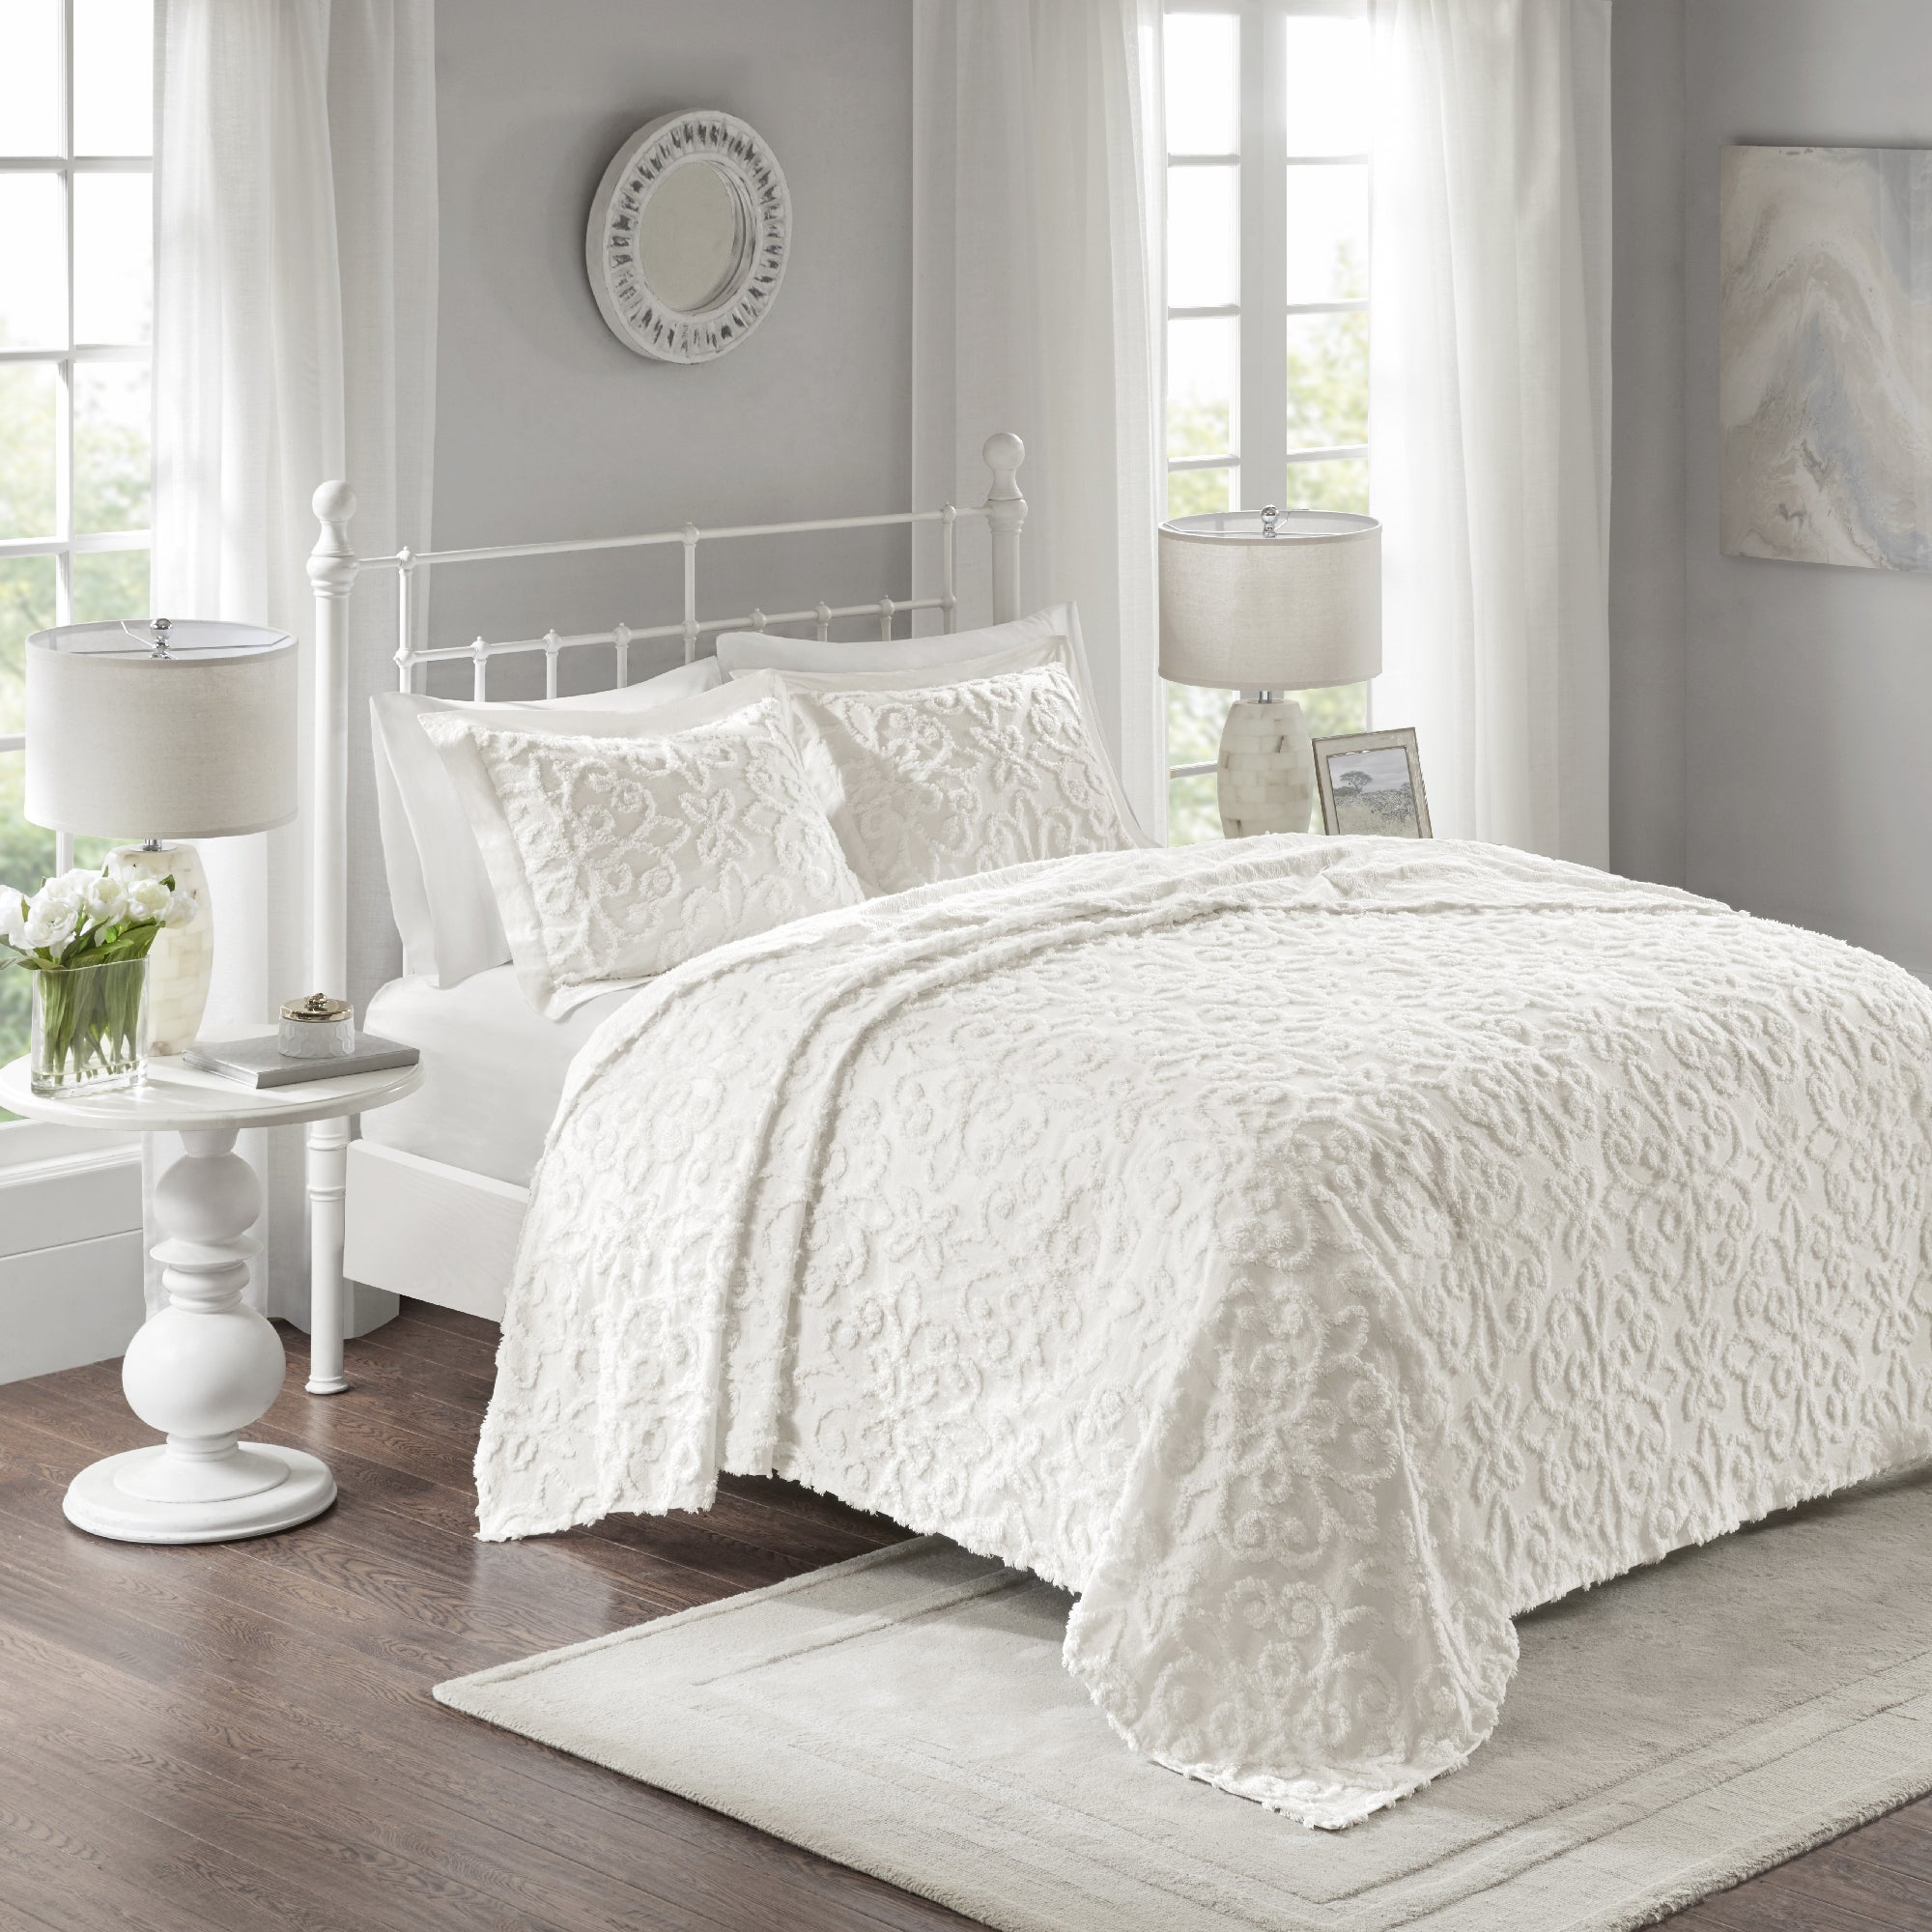 overstock pin free orders fashion bed online shipping com on your at bedding over